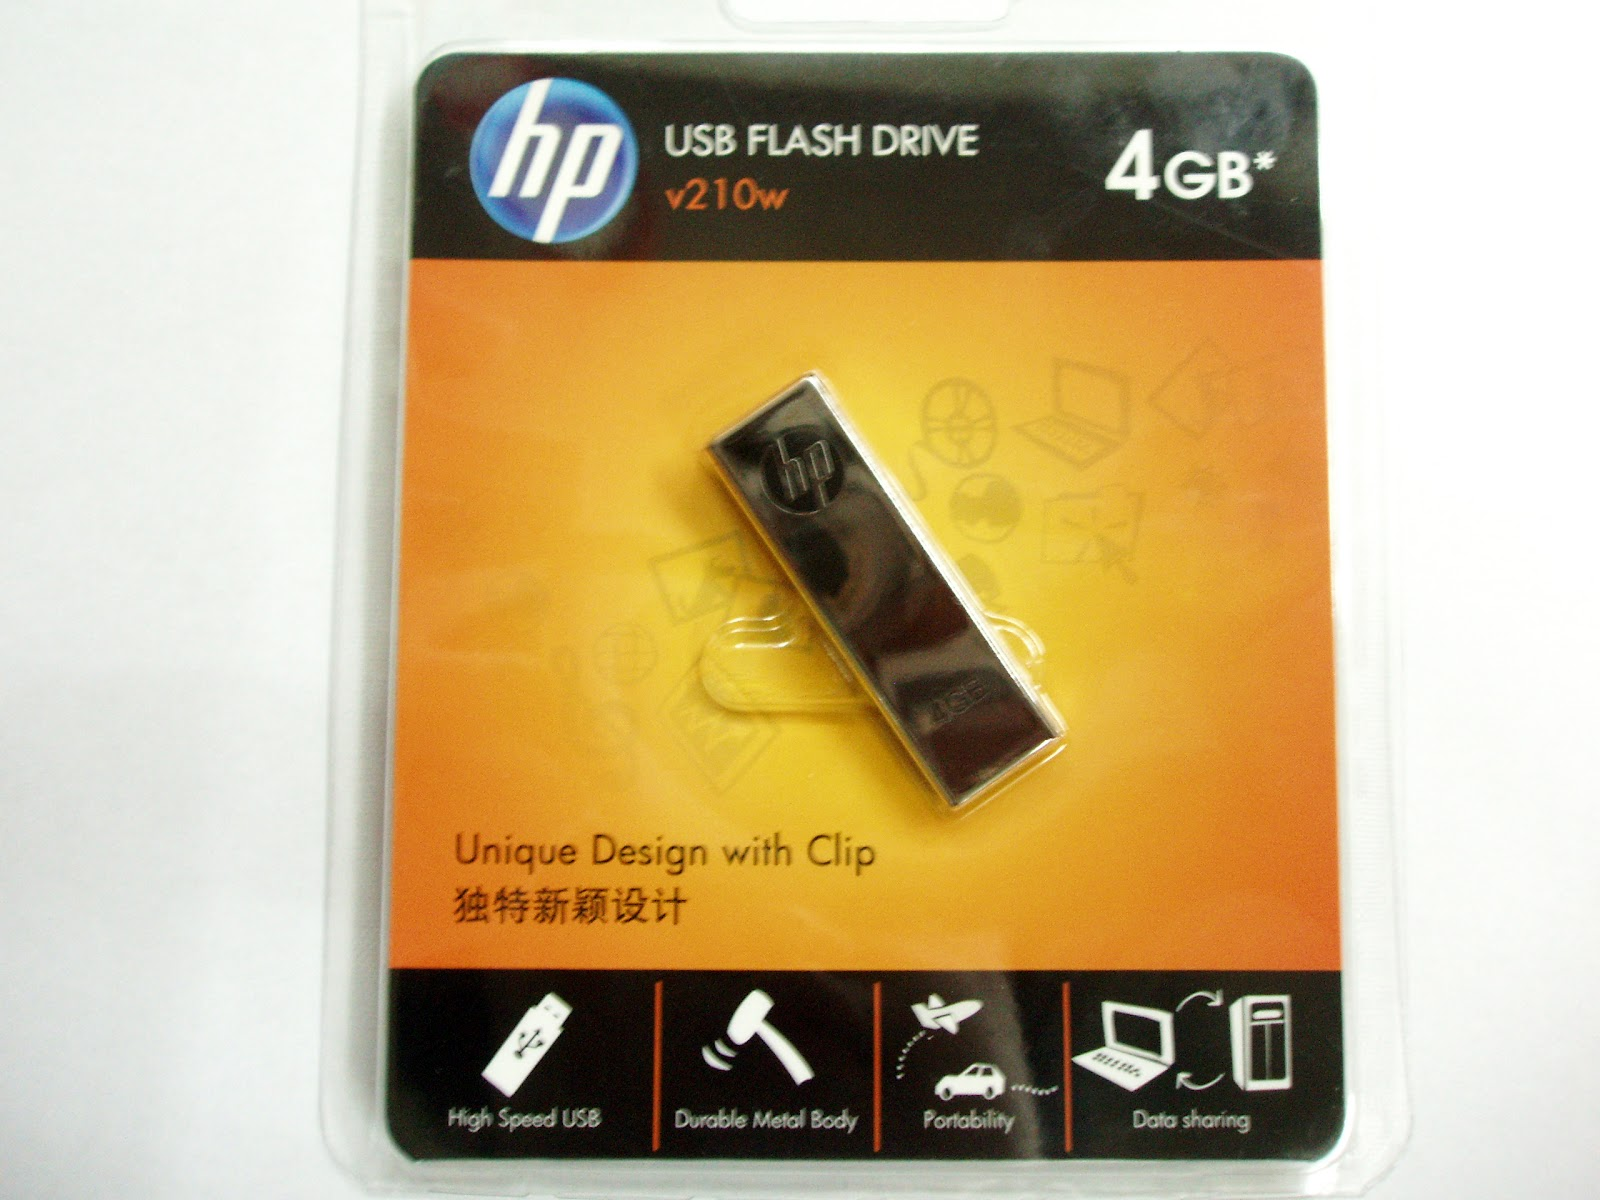 Maju Jaya Komputer Flash Disk Flashdisk Hp 2gb V210 4 Gb Price Rp 65000